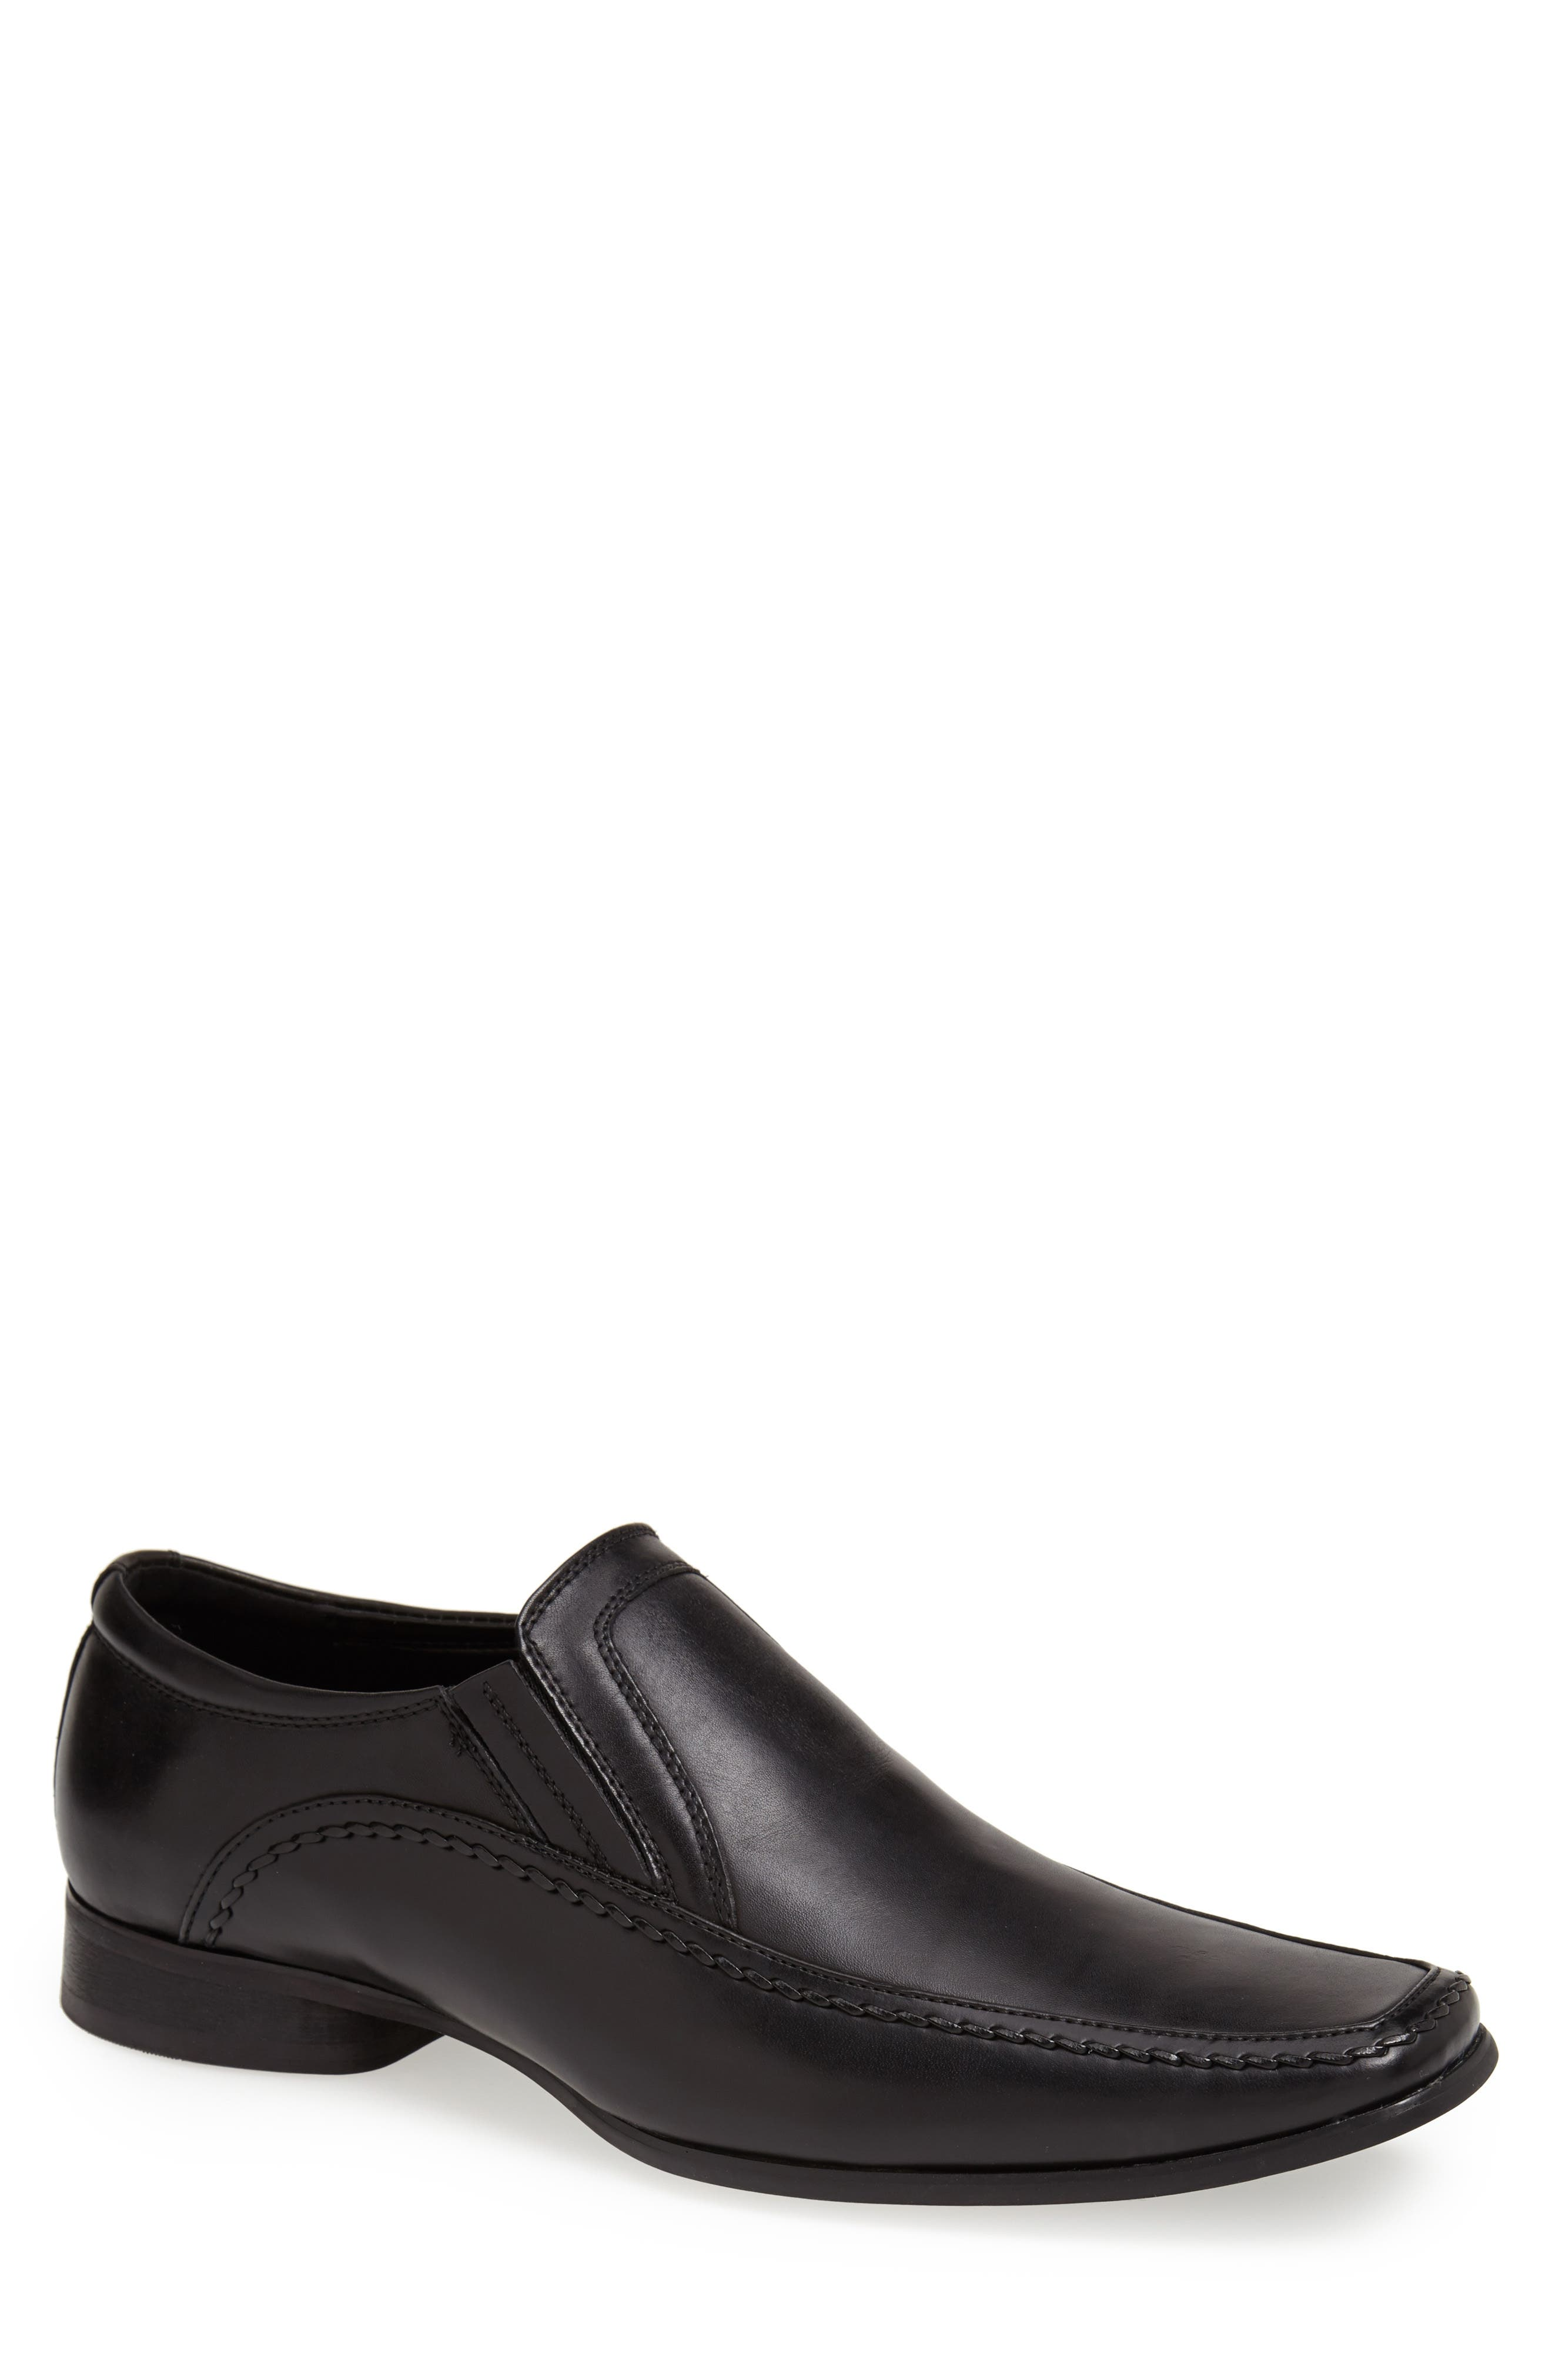 REACTION KENNETH COLE,                             'Key Note' Slip-On,                             Alternate thumbnail 4, color,                             001